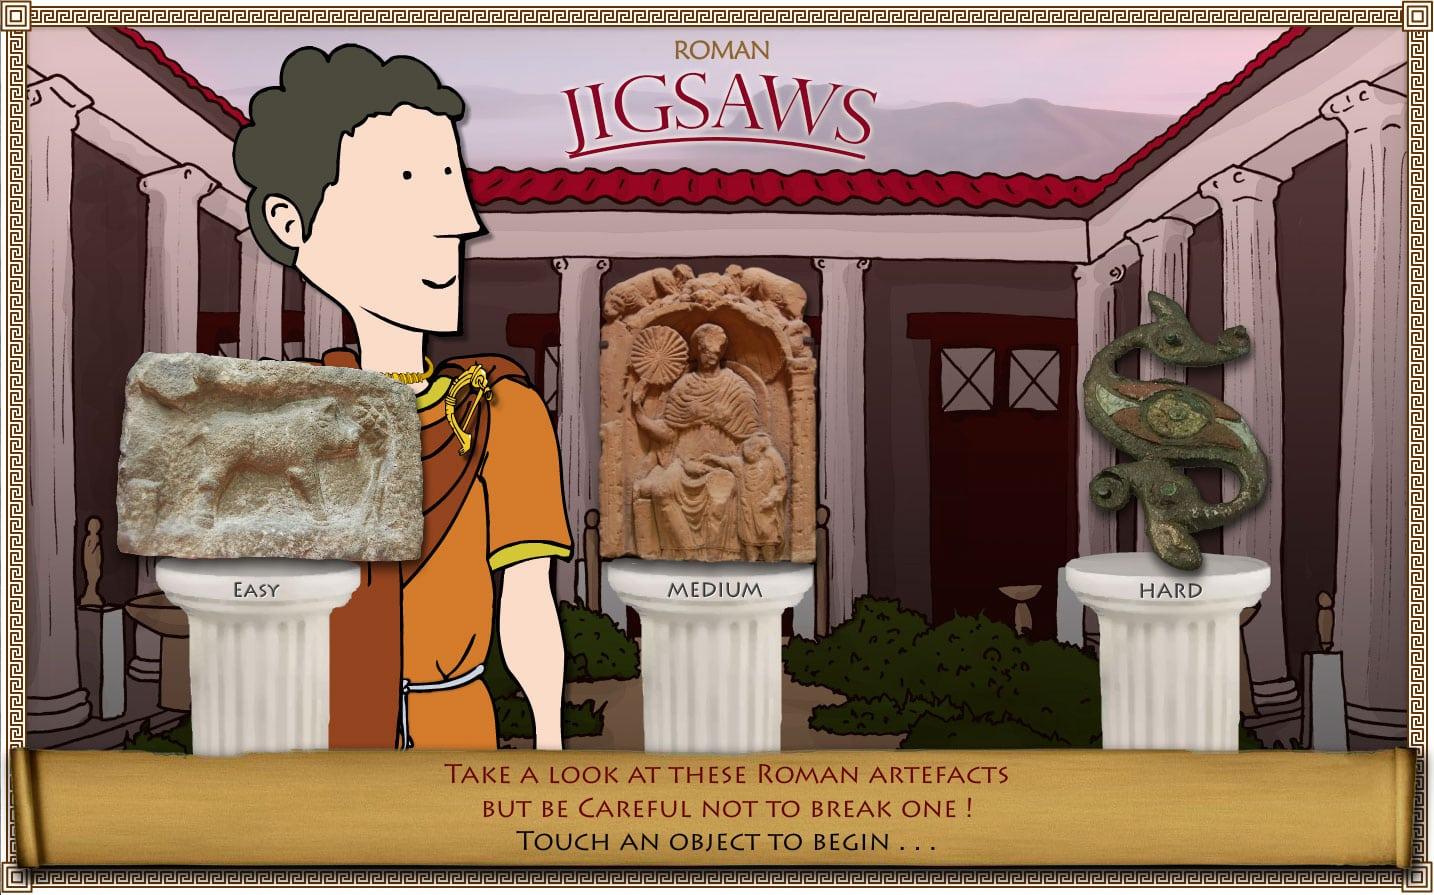 romans touchscreen interactive